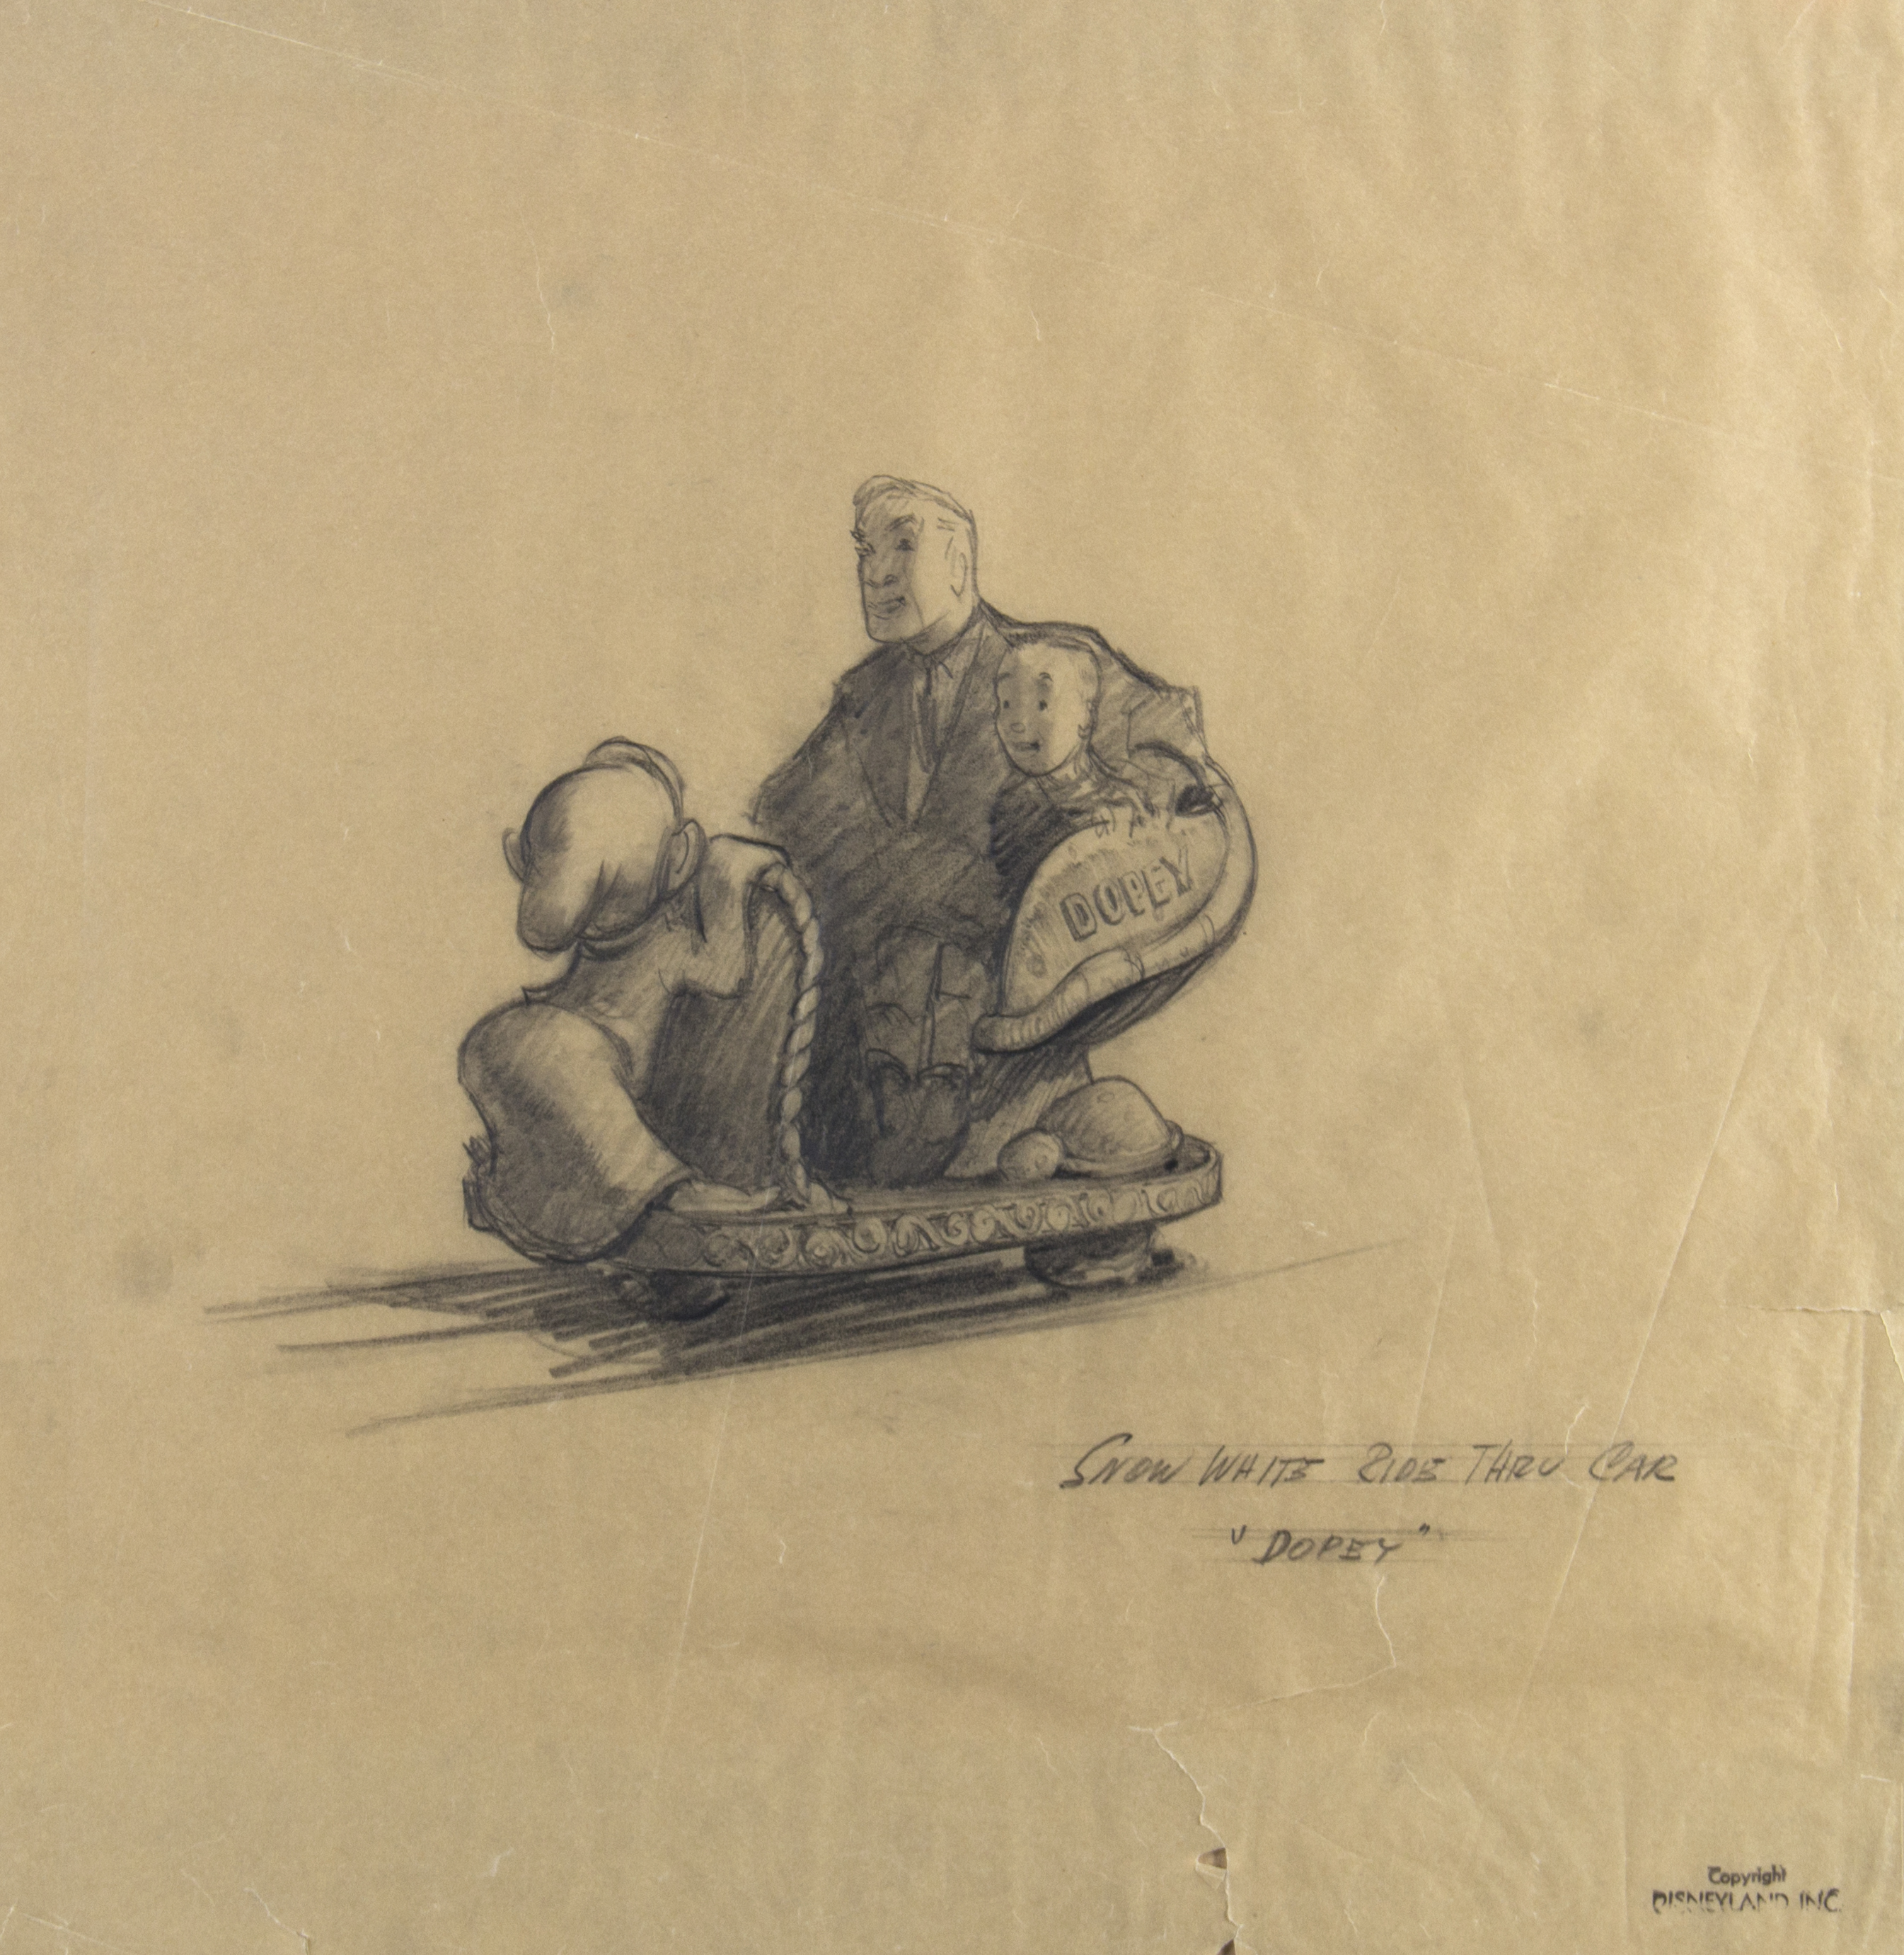 Snow White's Scary Adventures concept drawing, ca. 1954, by Bruce Bushman. This concept was used in early stages of the design of the attraction.